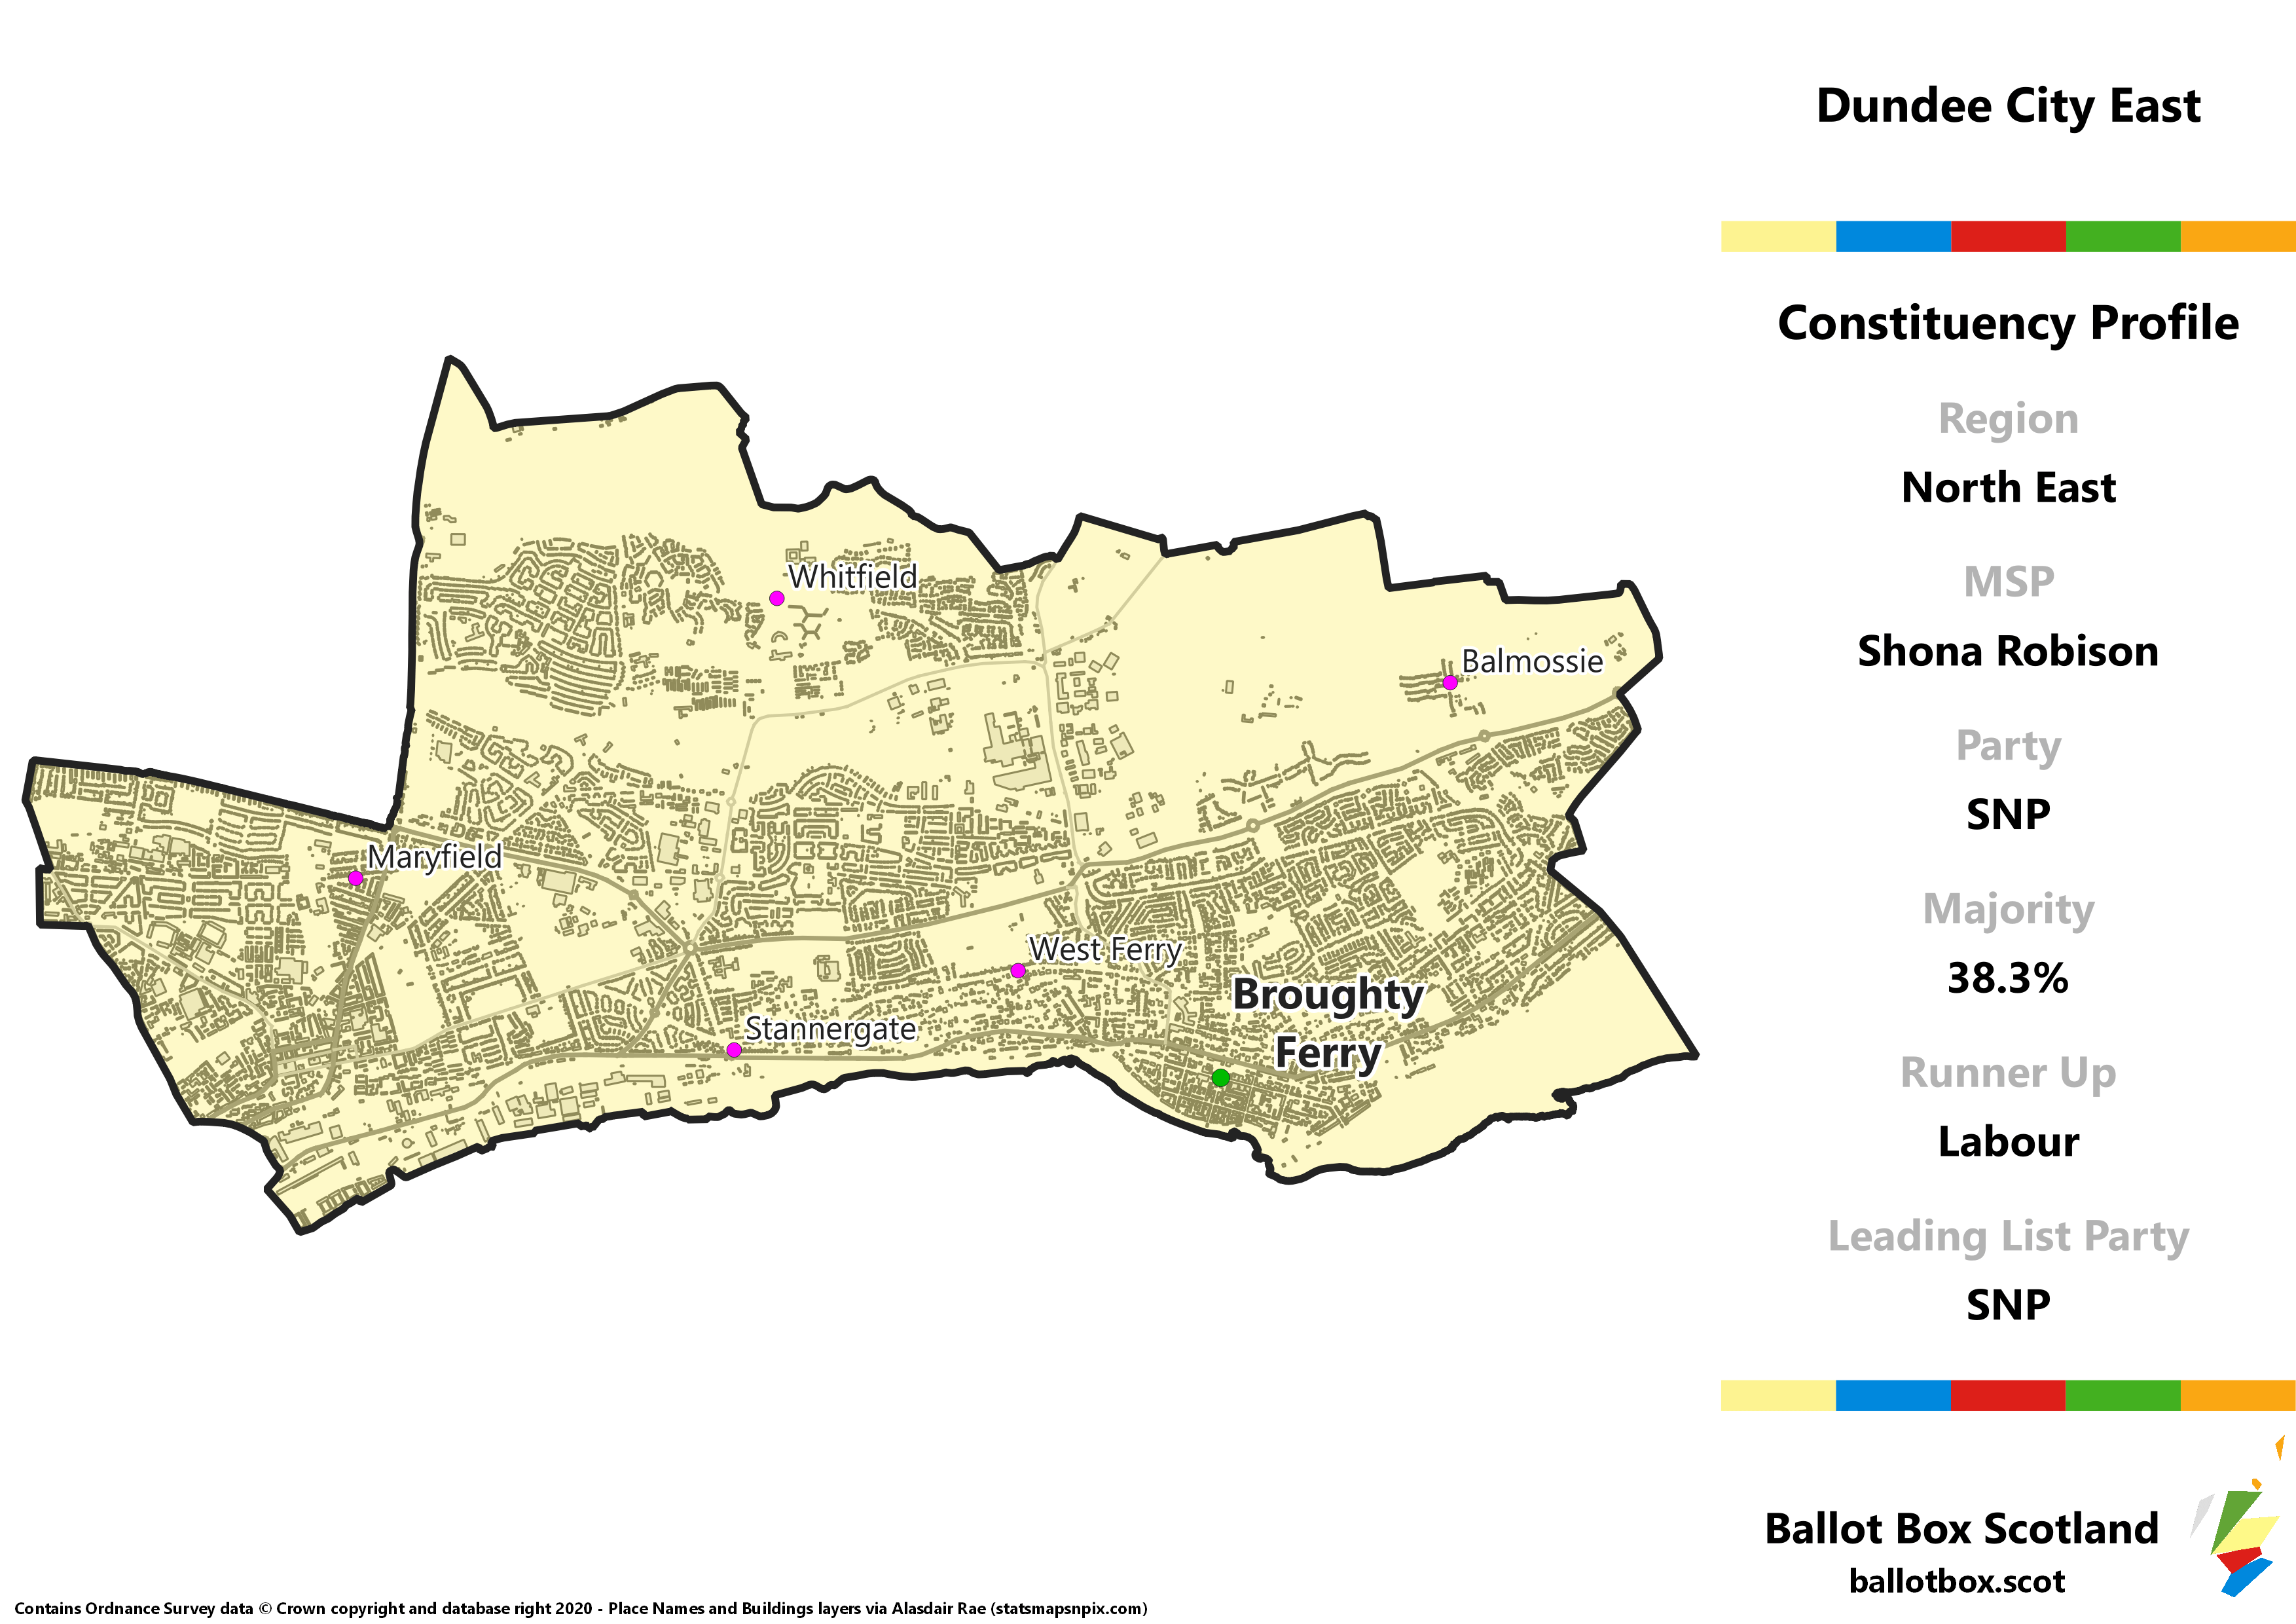 North East Region – Dundee City East Constituency Map